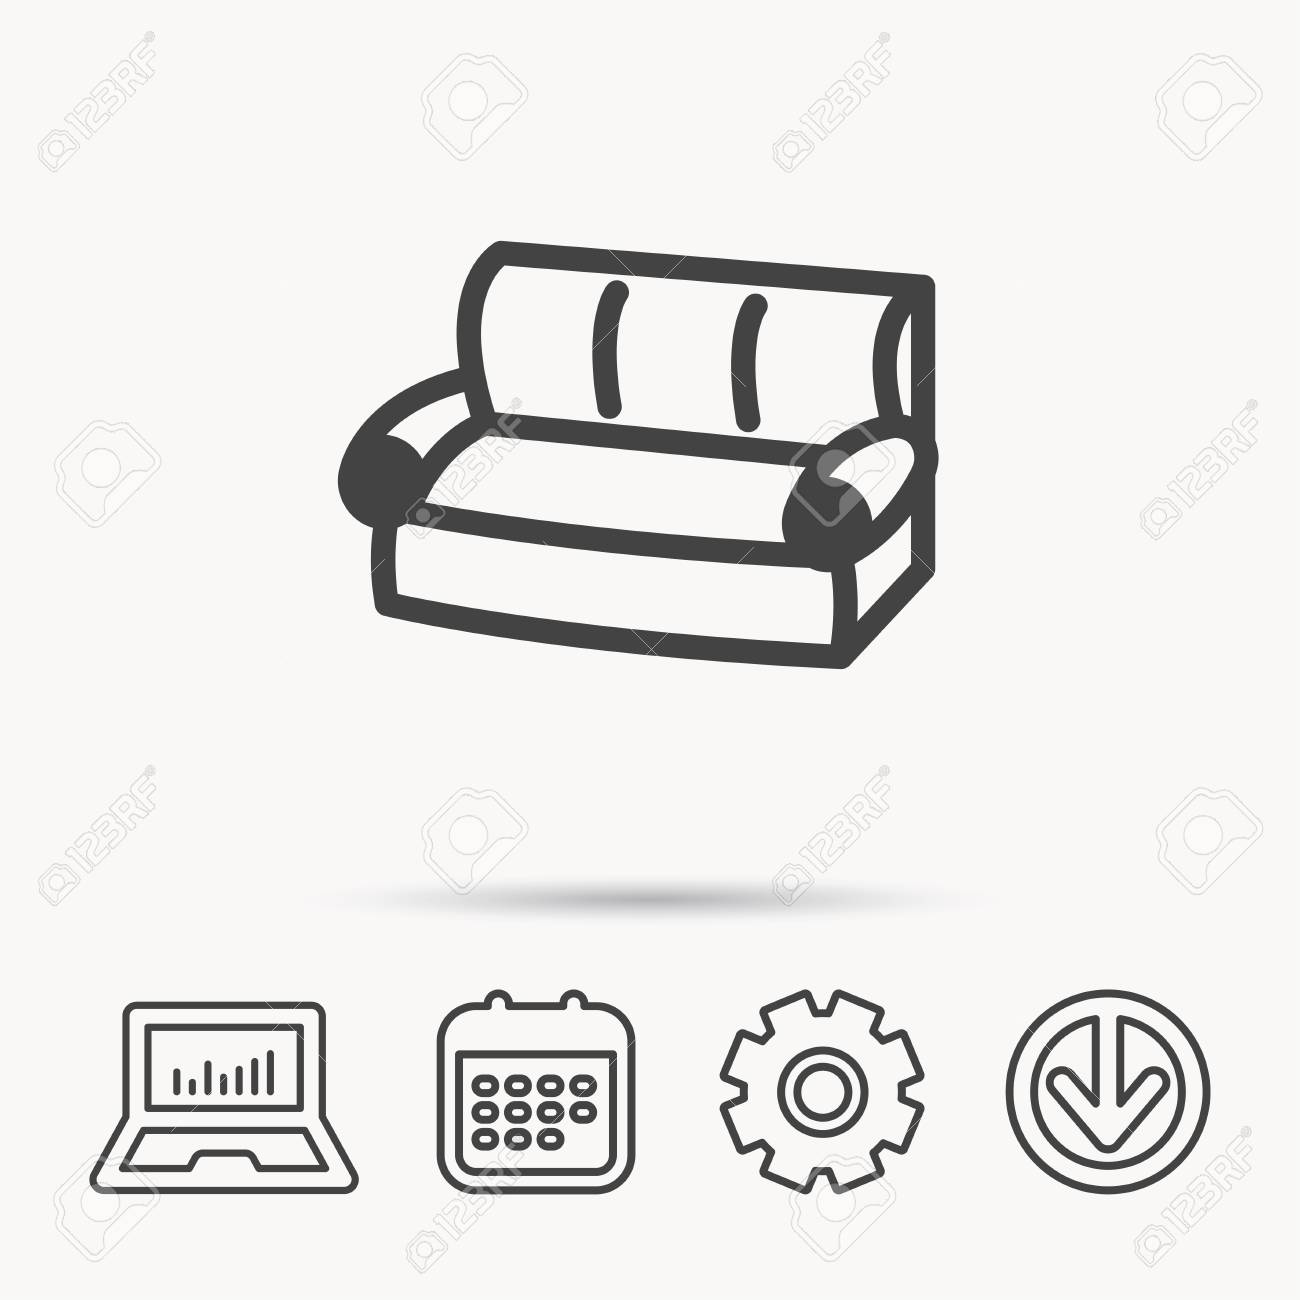 Sofa Set Vector Free Download Sofa Icon Comfortable Couch Sign Furniture Symbol Notebook